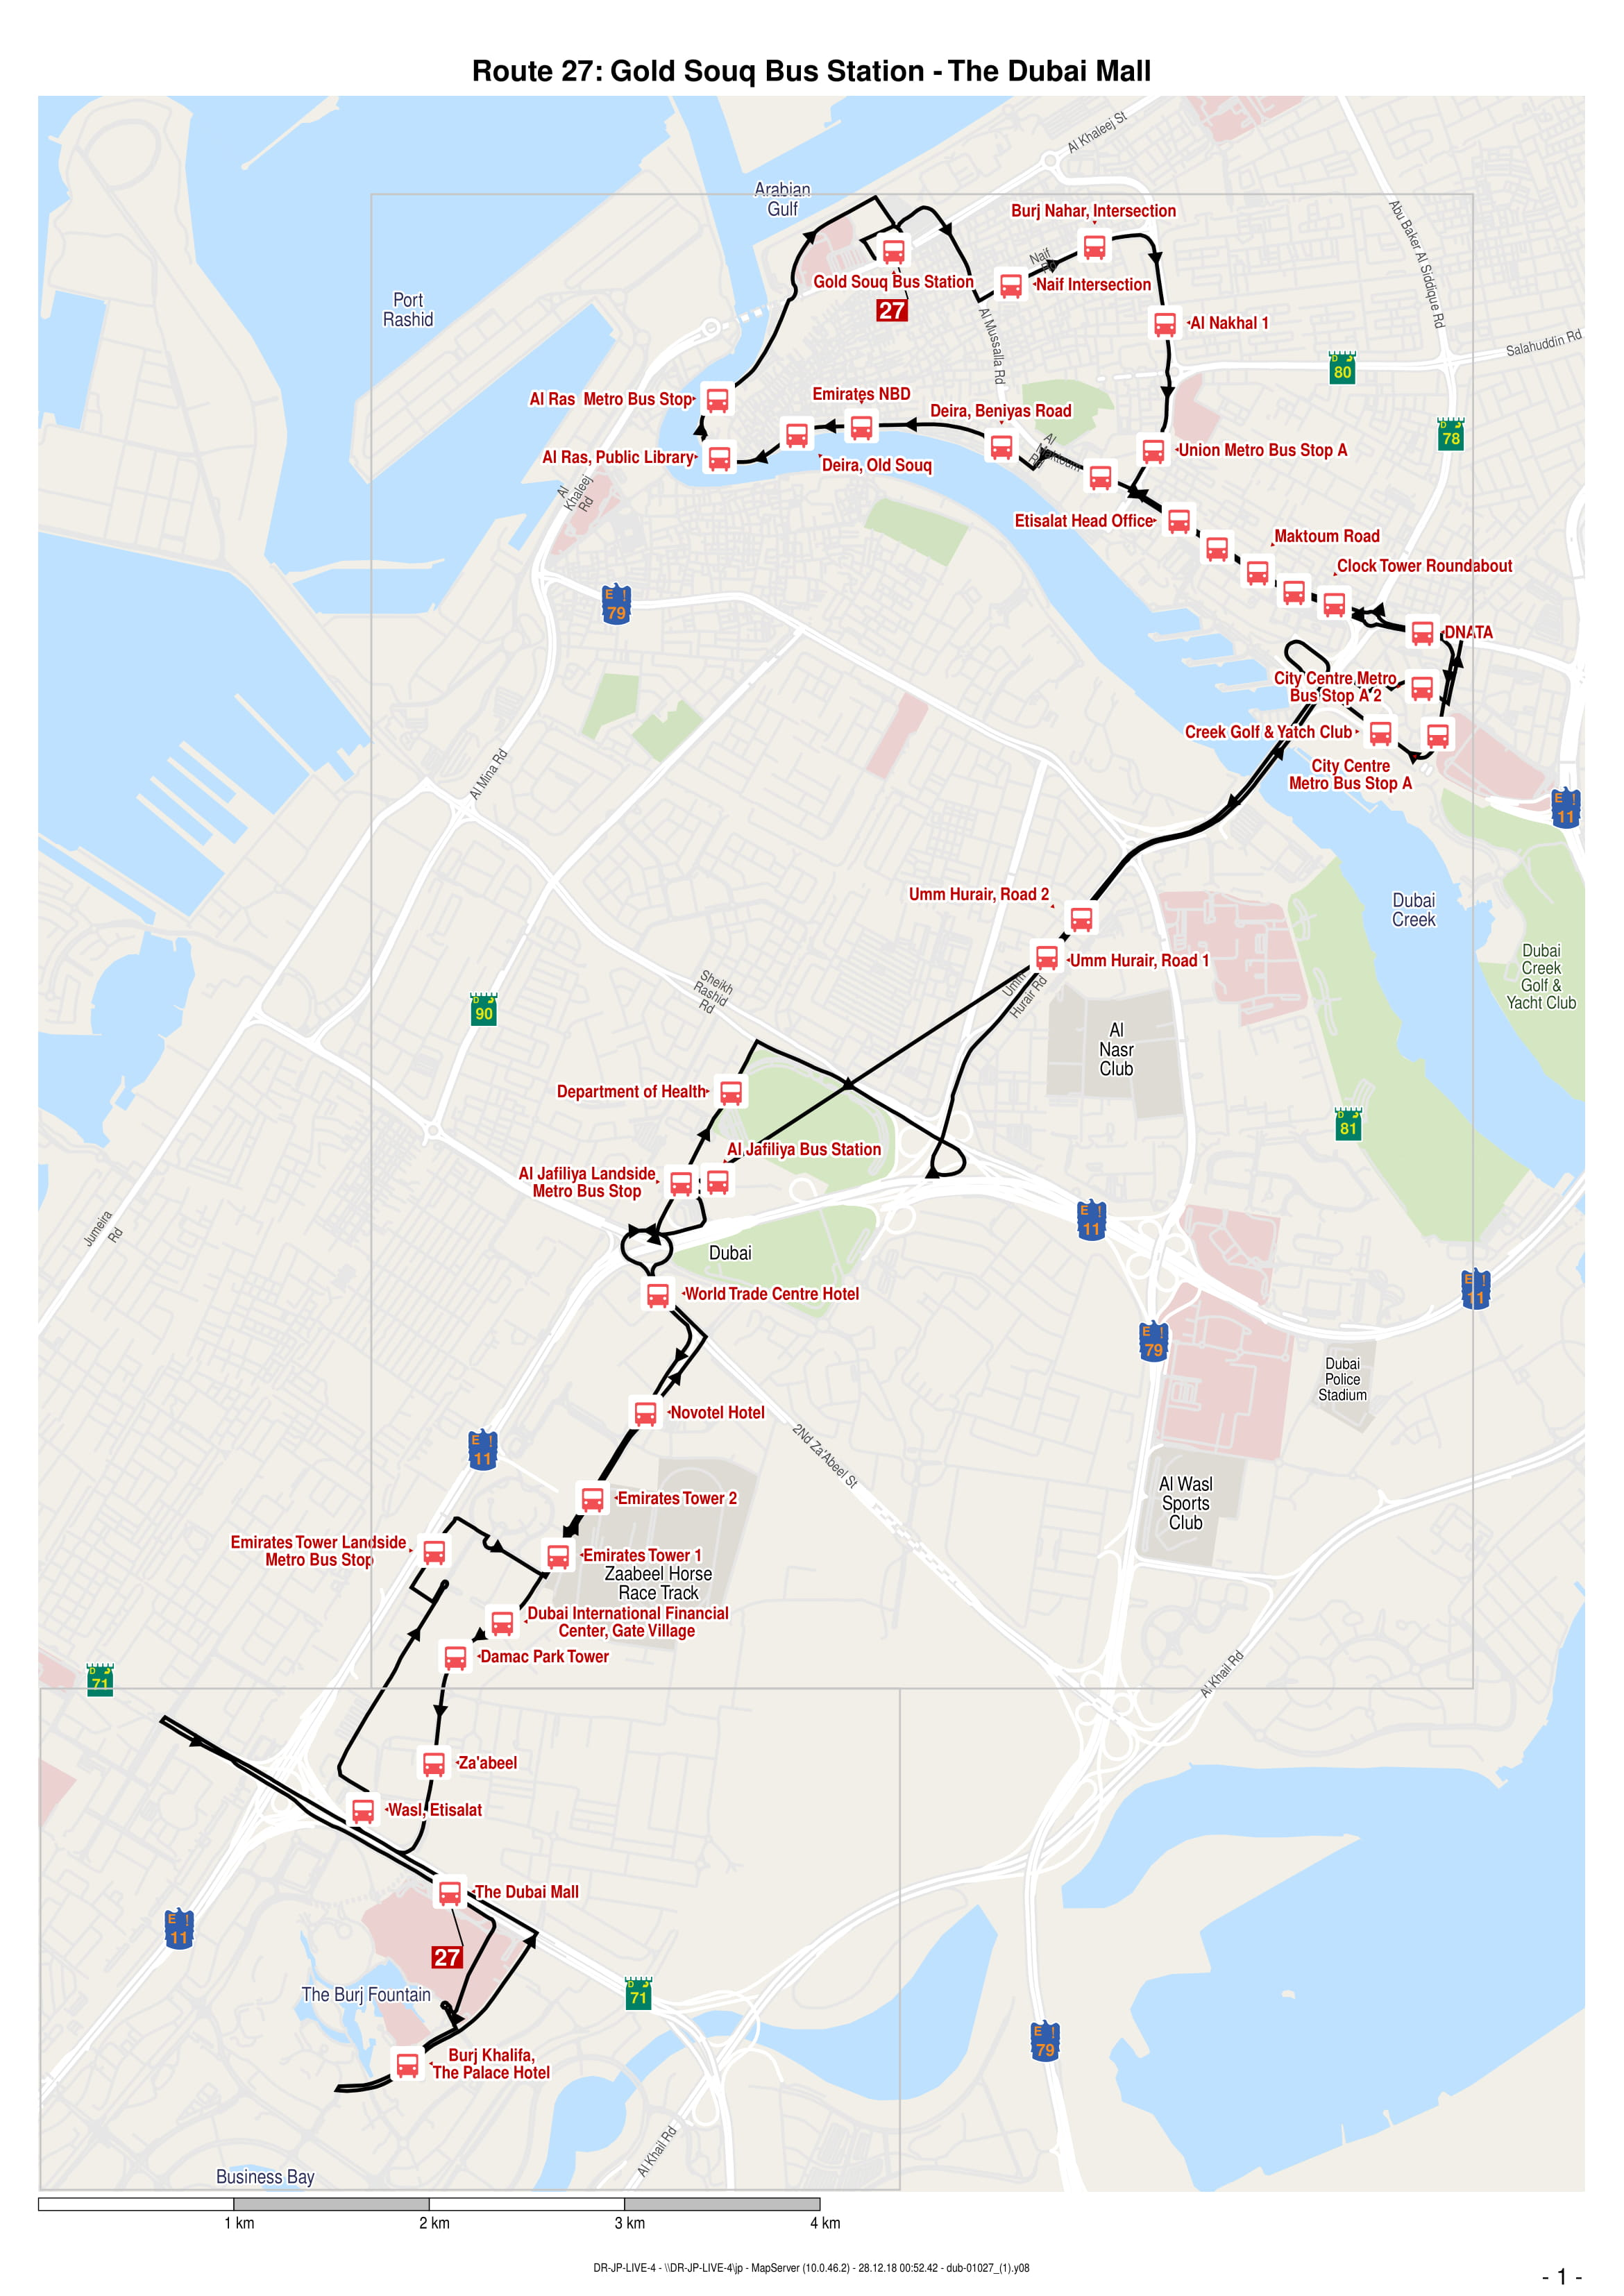 27 Bus Route in Dubai - Time Schedule, Stops and Maps - Your